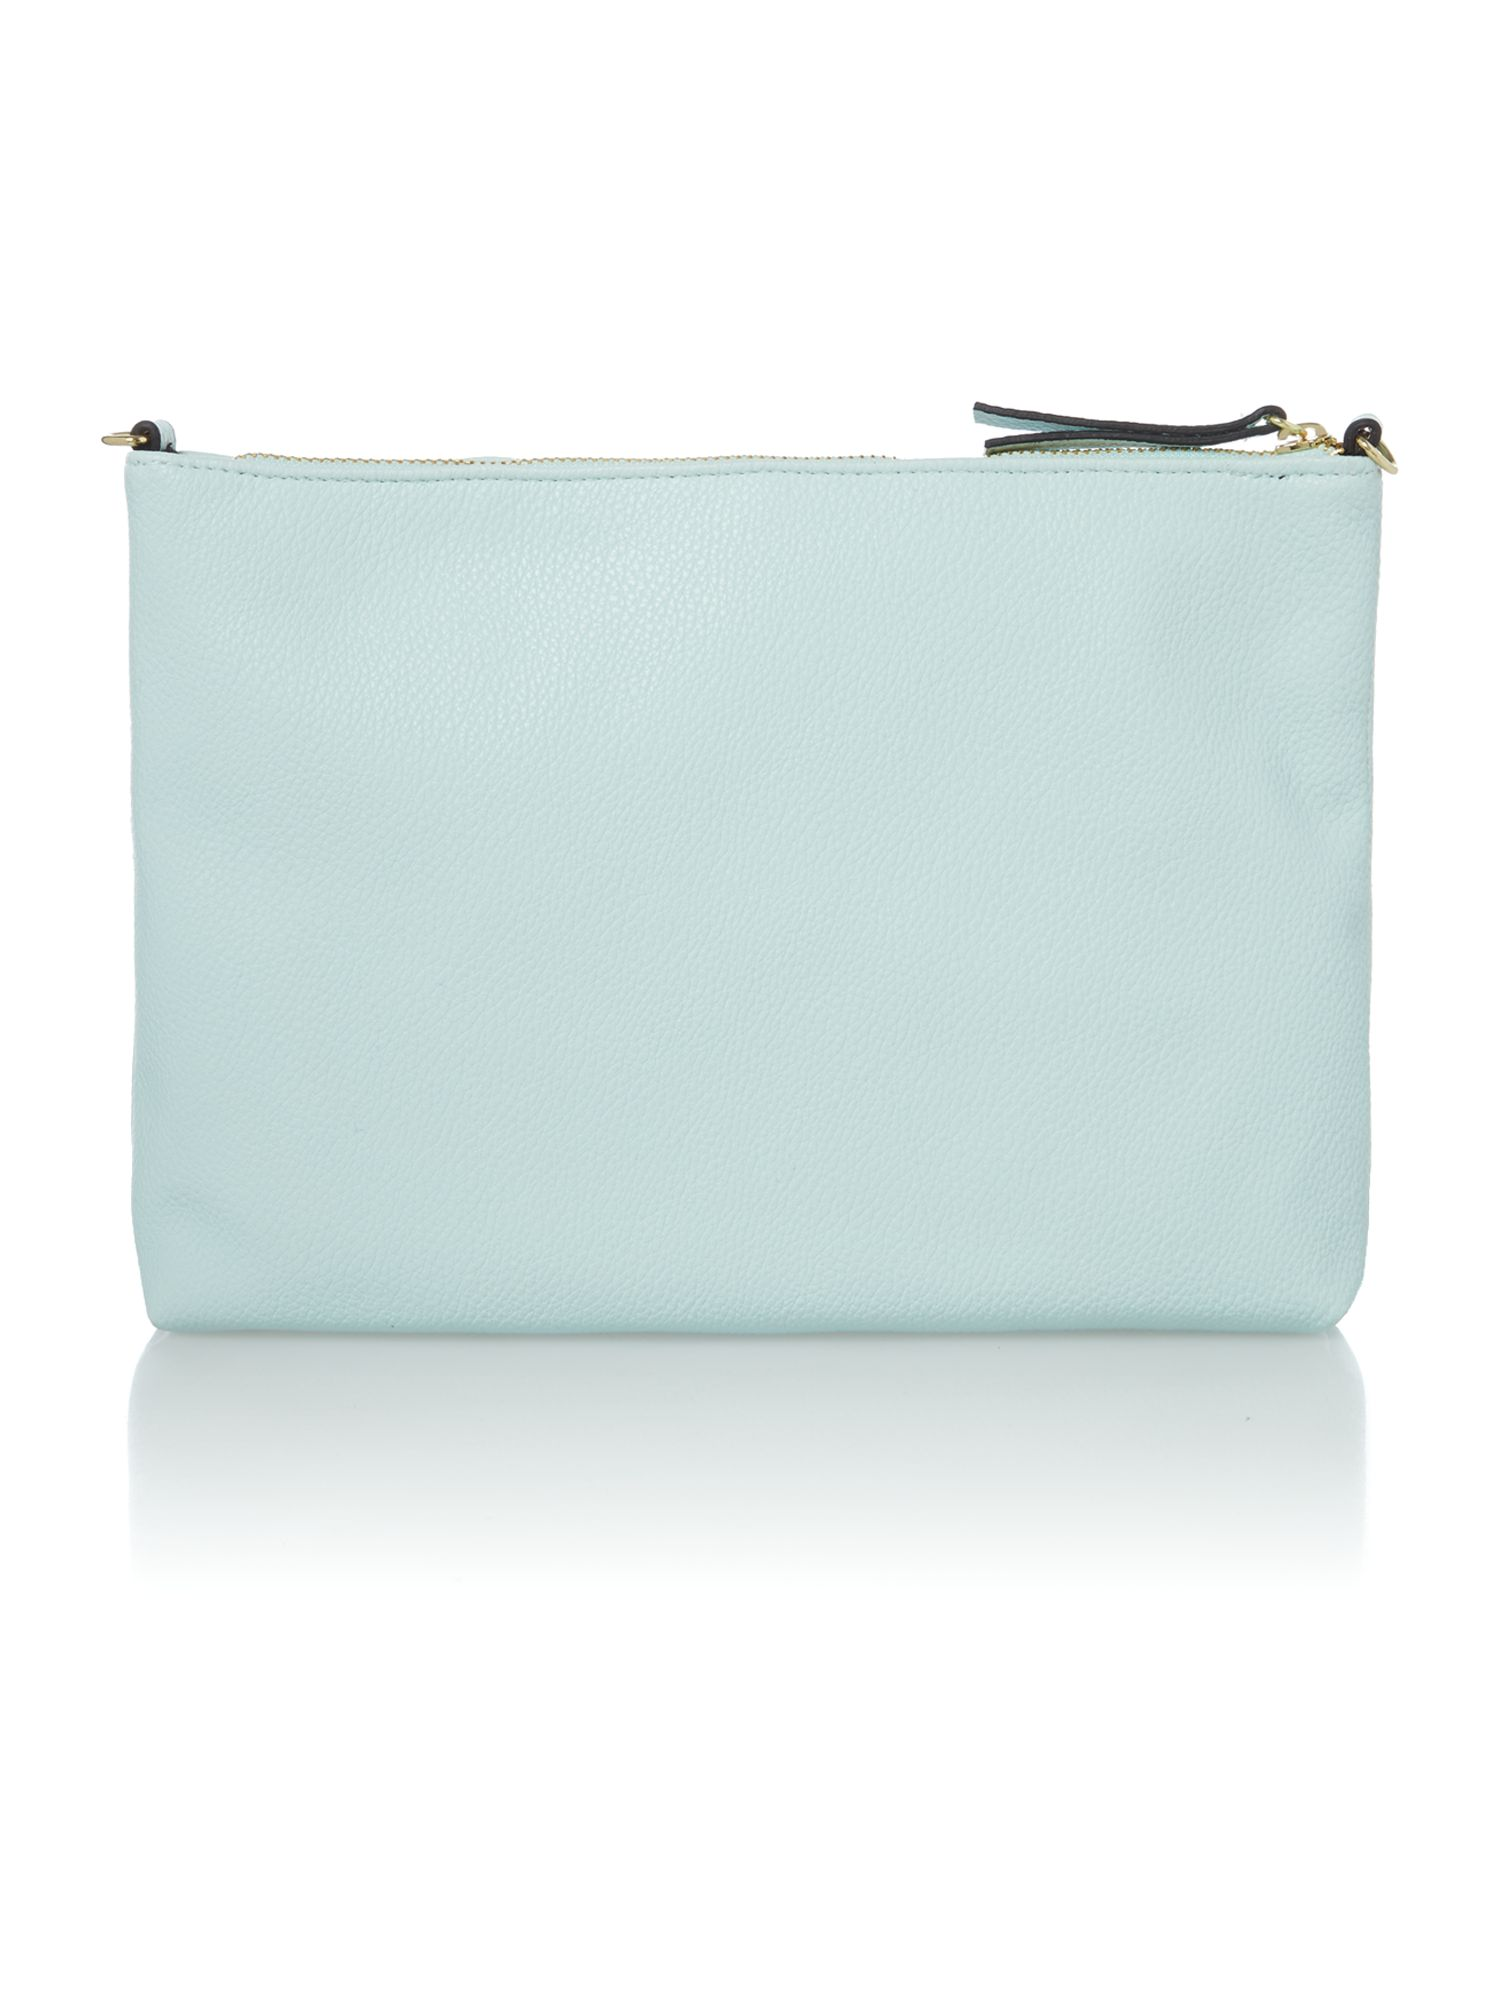 Heidi chain cross body bag